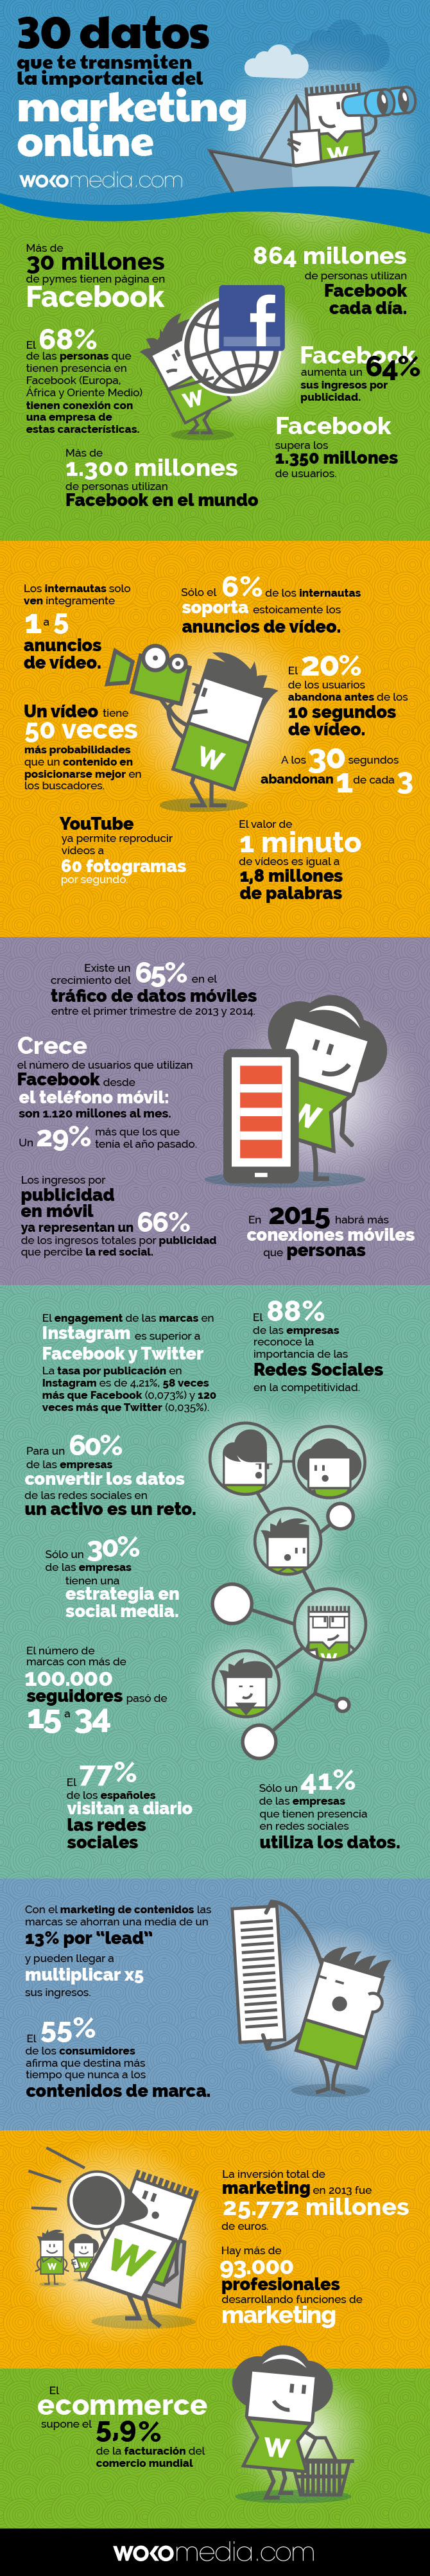 30 datos sobre la importancia del marketing online